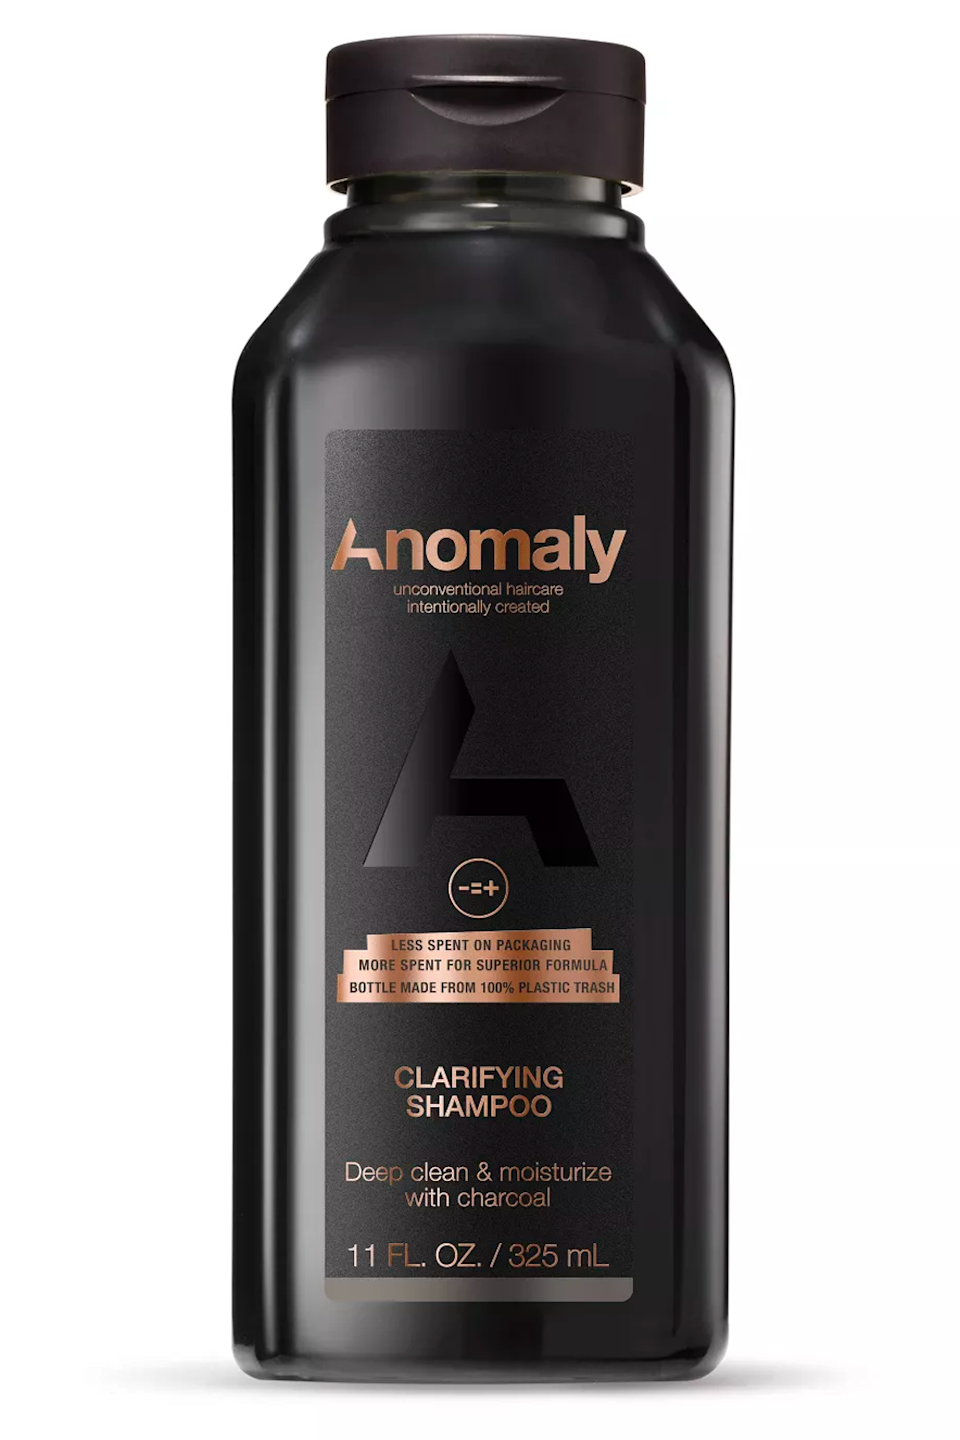 """<p><strong>Anomaly</strong></p><p>target.com</p><p><strong>$5.99</strong></p><p><a href=""""https://www.target.com/p/anomaly-clarifying-shampoo-11-fl-oz/-/A-80139154"""" rel=""""nofollow noopener"""" target=""""_blank"""" data-ylk=""""slk:Shop Now"""" class=""""link rapid-noclick-resp"""">Shop Now</a></p><p>Sorry, this clarifying shampoo won't magically give you glossy Hollywood hair of Anomaly founder <a href=""""https://www.instagram.com/p/CQod2r7HrJ4/"""" rel=""""nofollow noopener"""" target=""""_blank"""" data-ylk=""""slk:Priyanka Chopra"""" class=""""link rapid-noclick-resp"""">Priyanka Chopra</a> (wow, rude), but it <em>will </em><strong>dissolve gunky product buildup and absorb excess scalp oils with a dose of charcoal</strong>. This one is on the more ~intense~ end of the dryness spectrum, so make sure to use sparingly and with a good deep conditioner.</p>"""